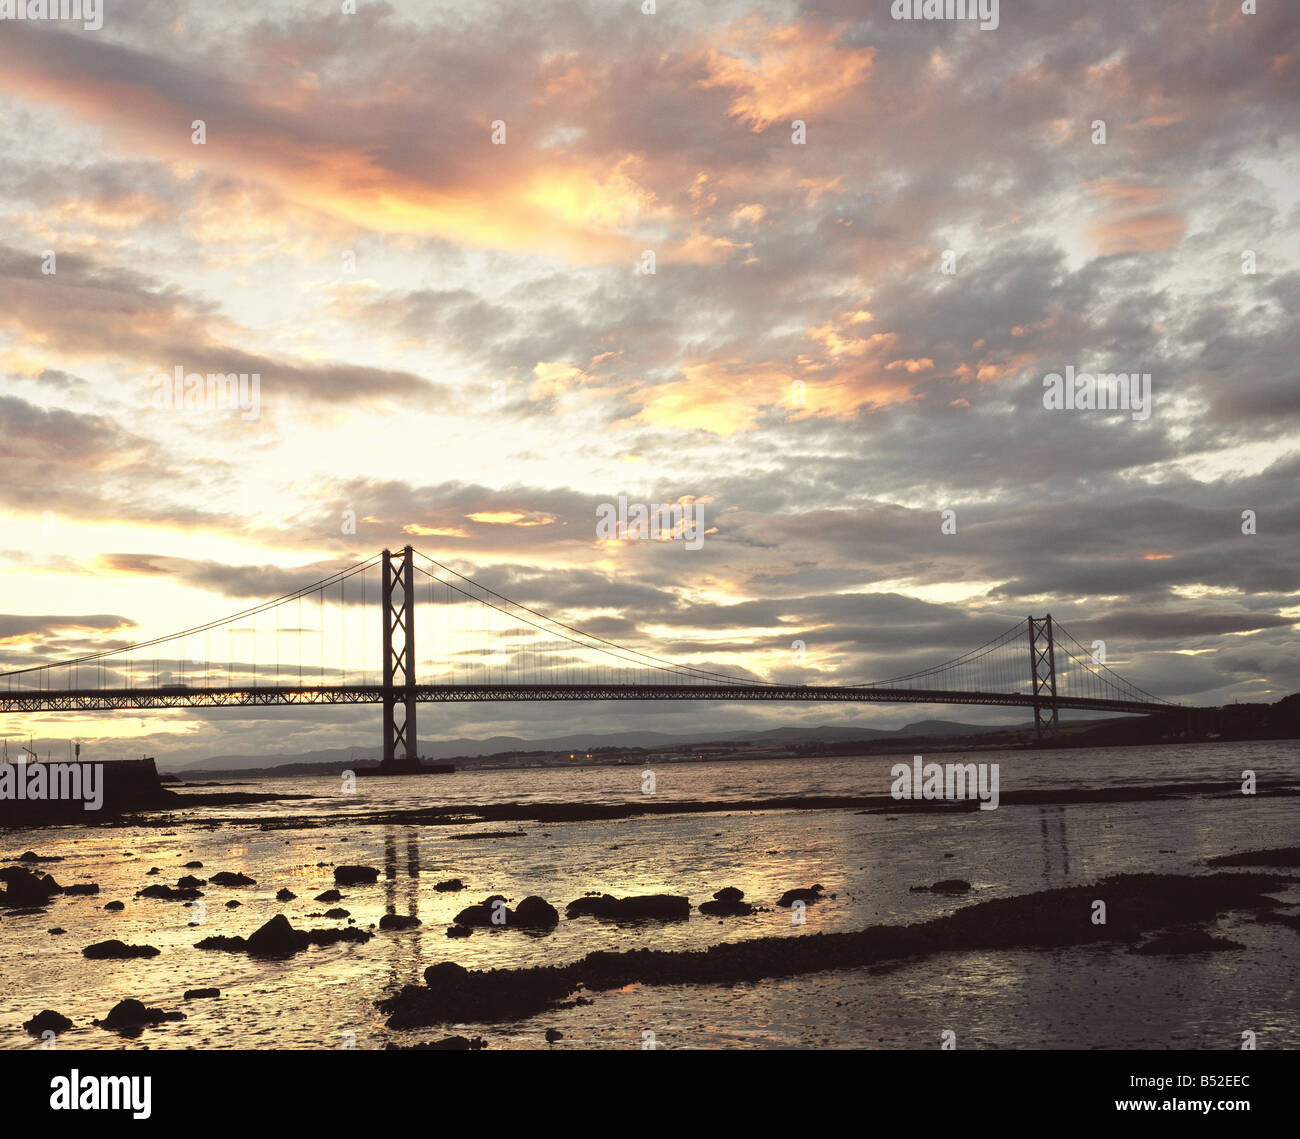 The Forth Road Bridge and the river Forth from South Queensferry, near Edinburgh - Stock Image